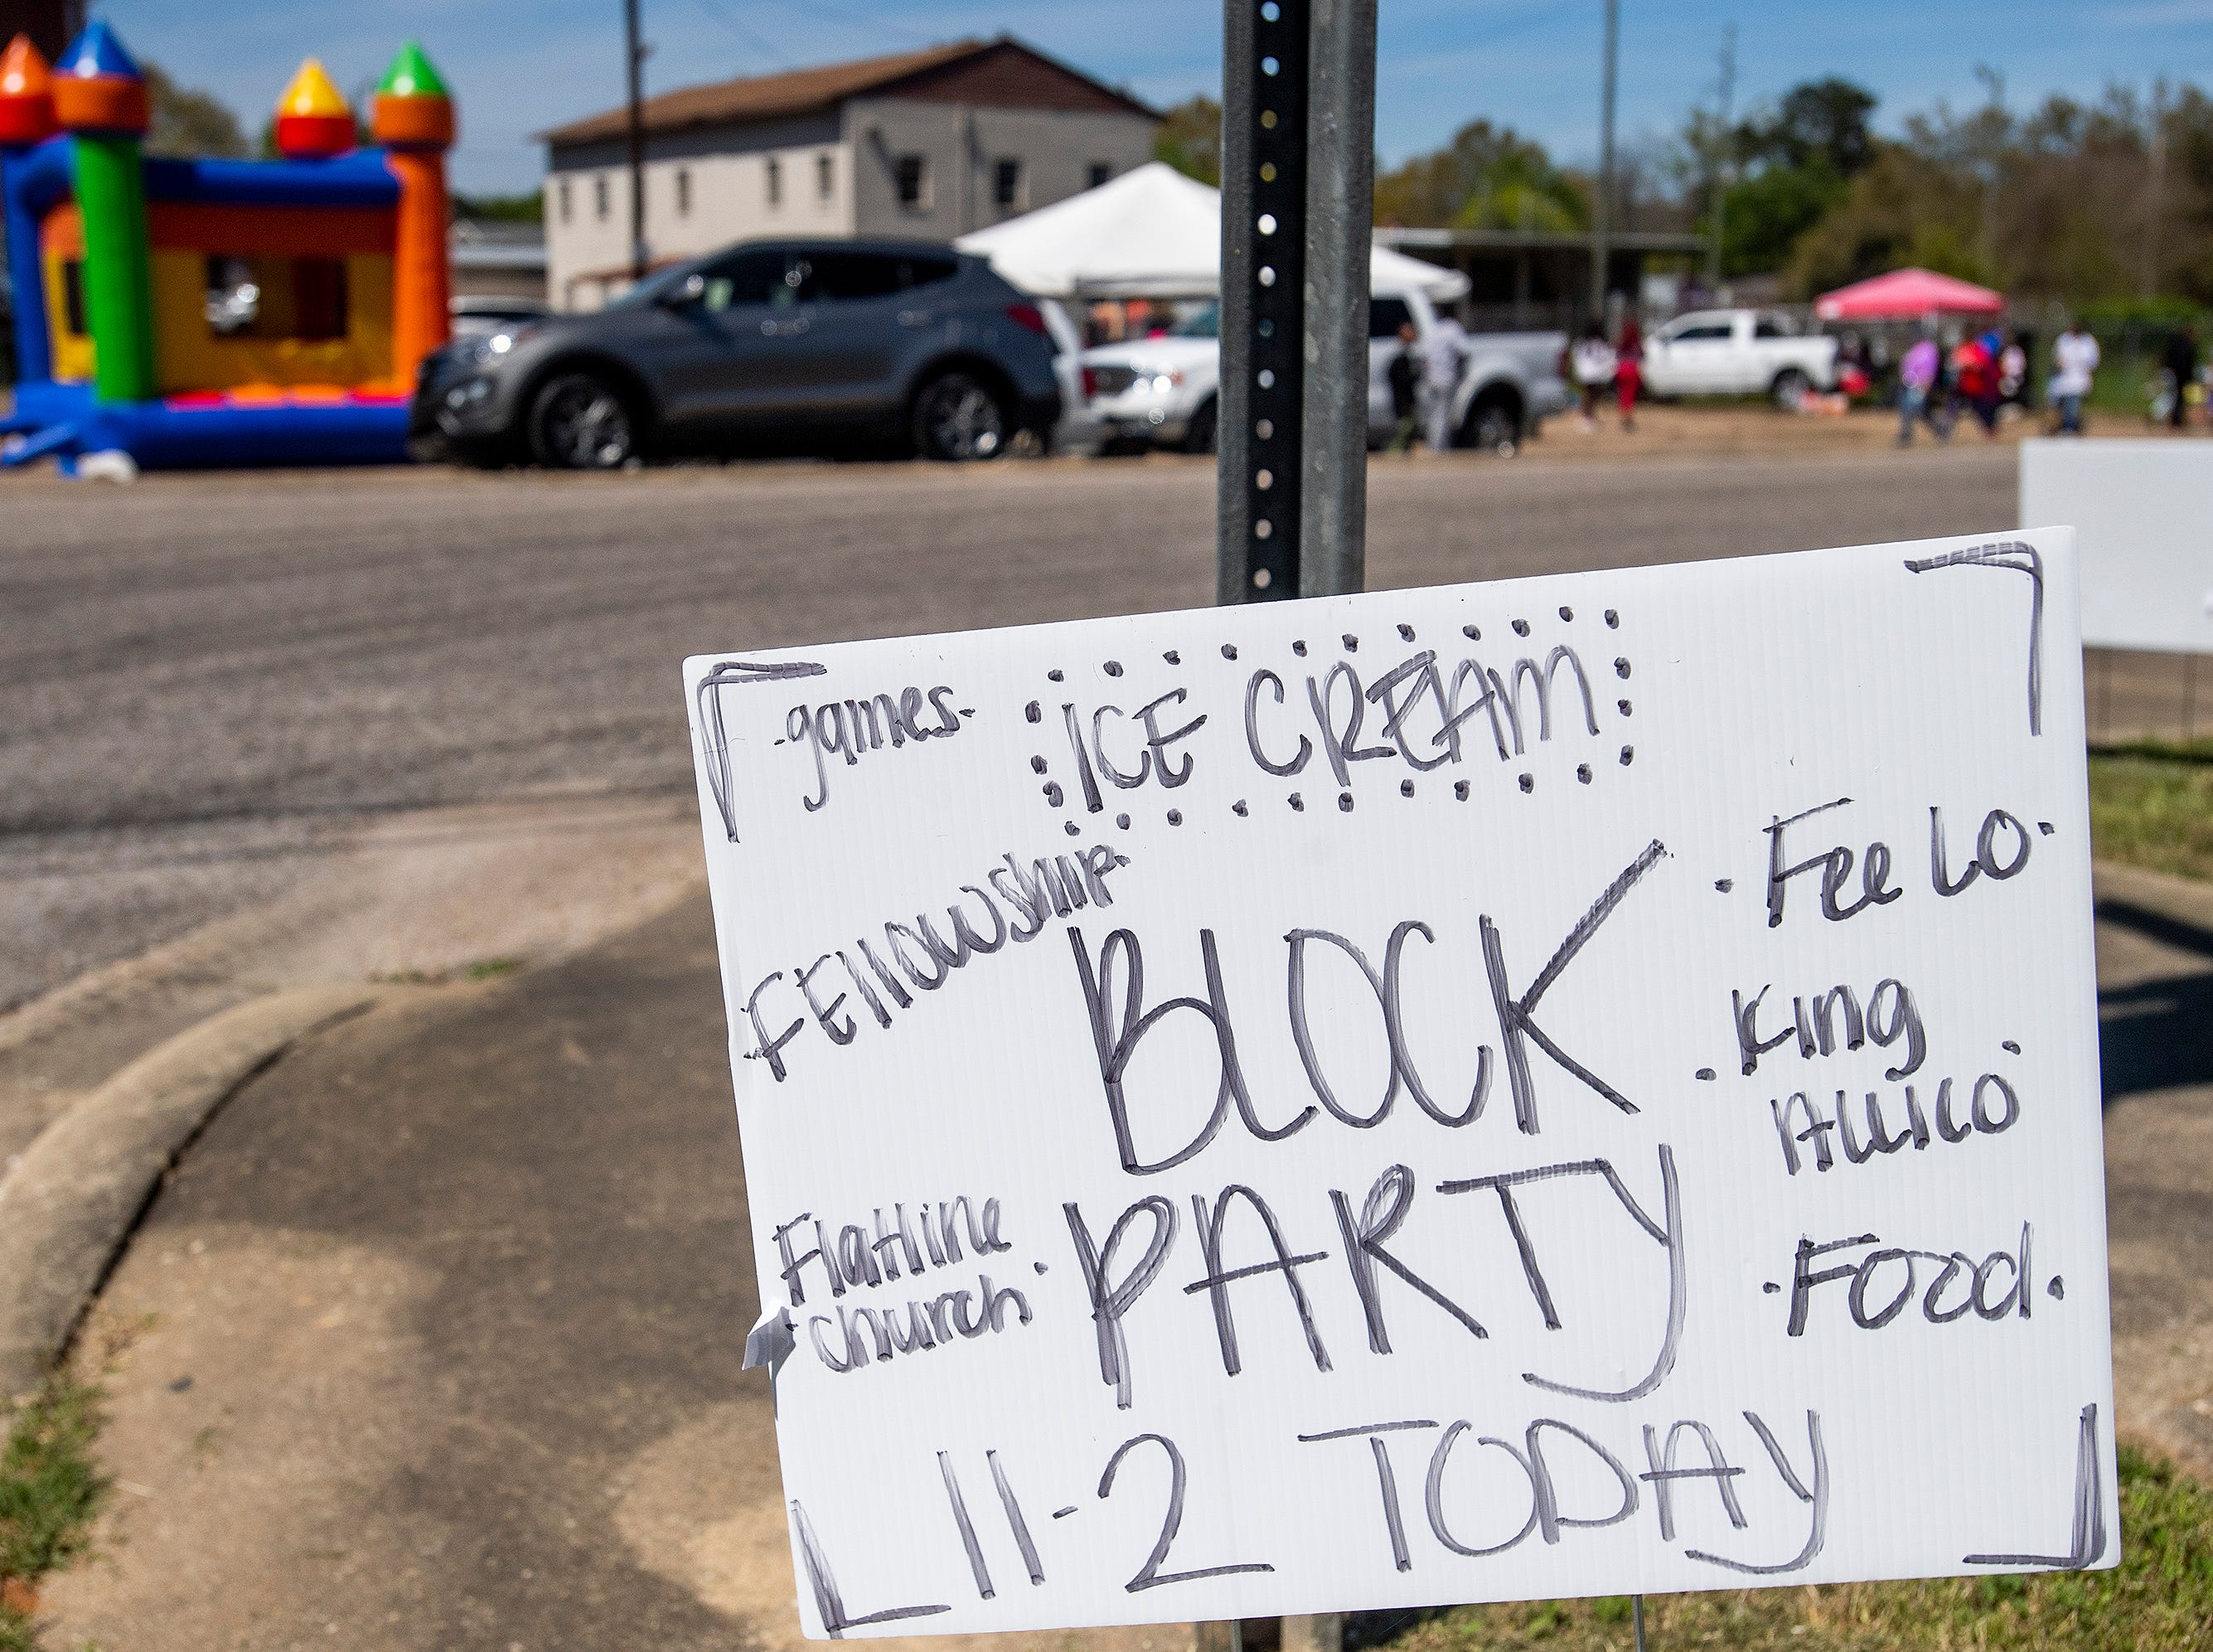 Flatline Church hosts a block party for the Chisholm neighborhood in Montgomery, Ala., on Saturday March 23, 2019.